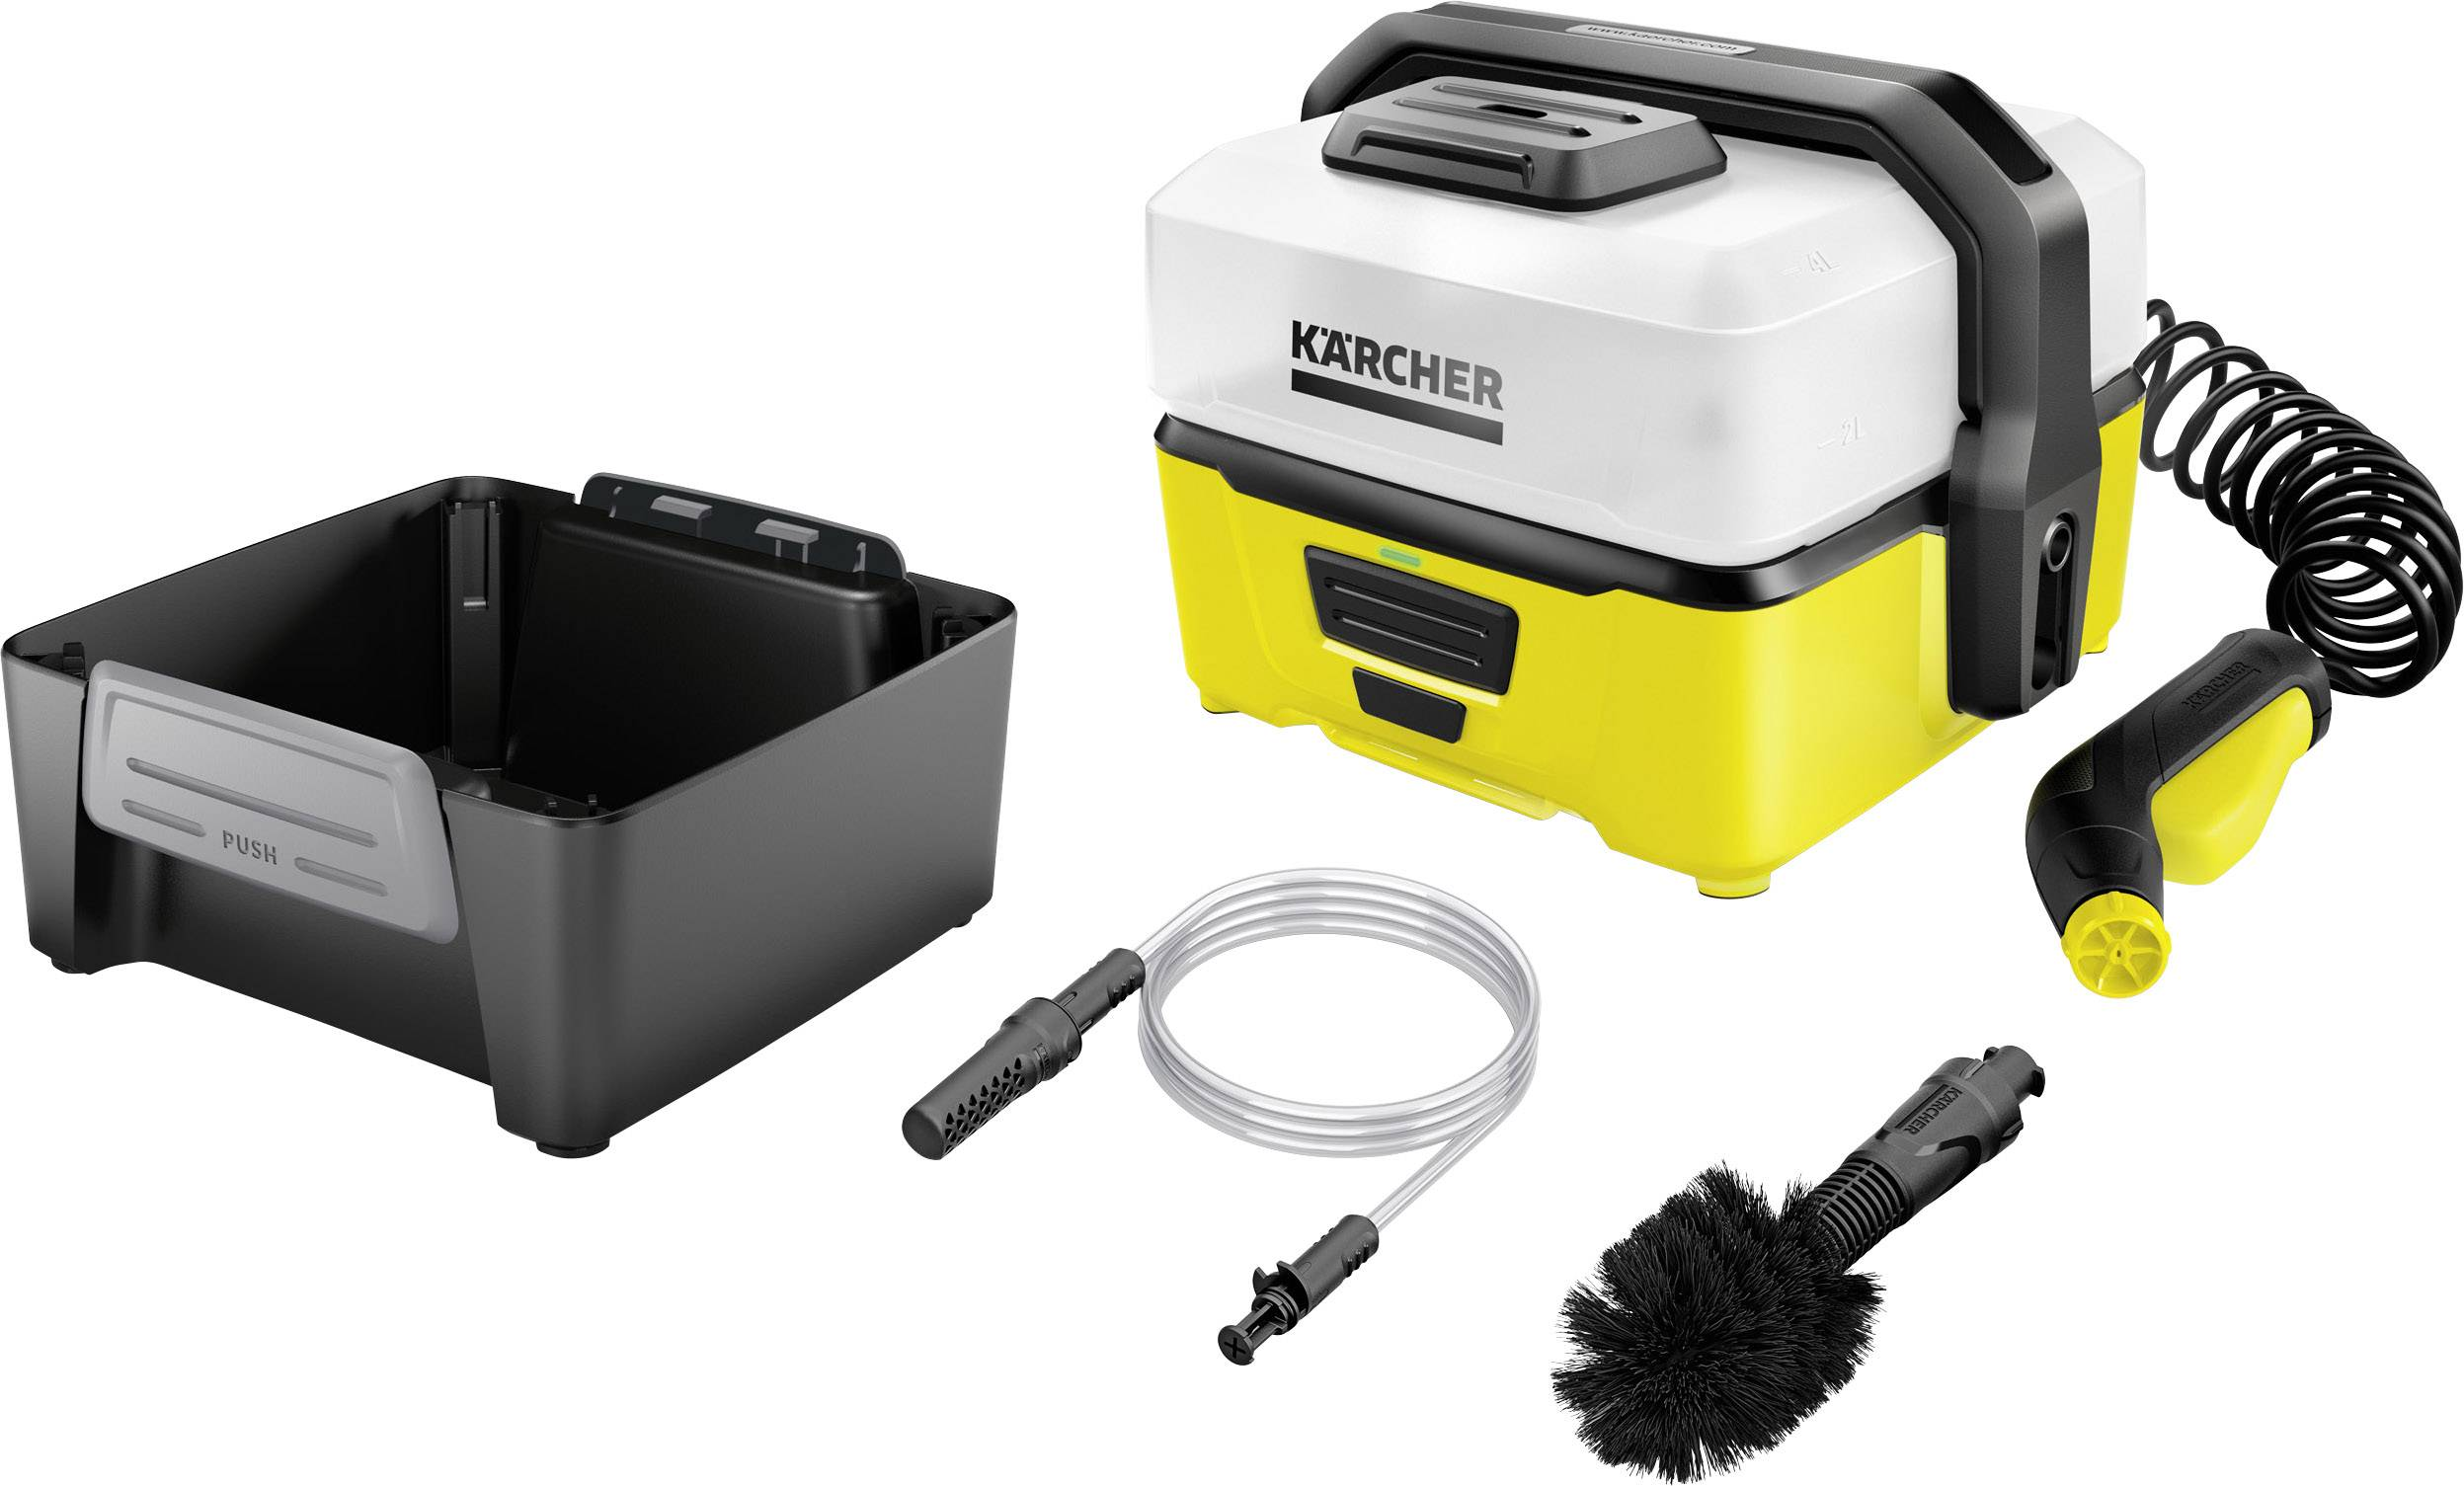 Karcher Reiniger Kärcher Oc 3 Mobile Adventure Box Mobiel Wasstation 5 Bar Koud Water